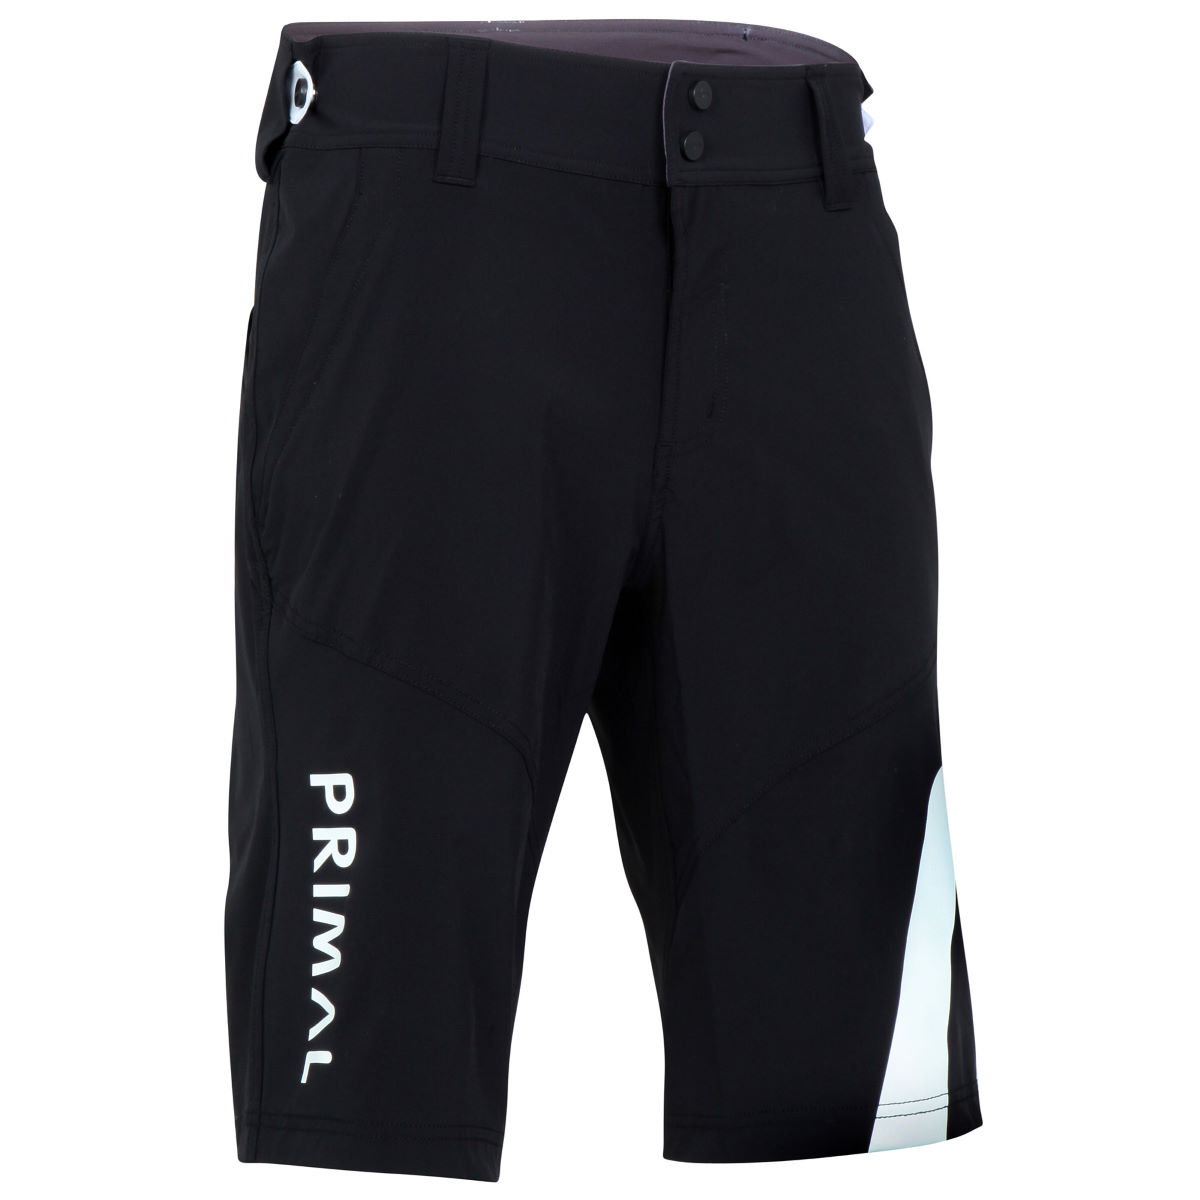 Short Primal Onyx Escade - XS Noir Cuissards courts